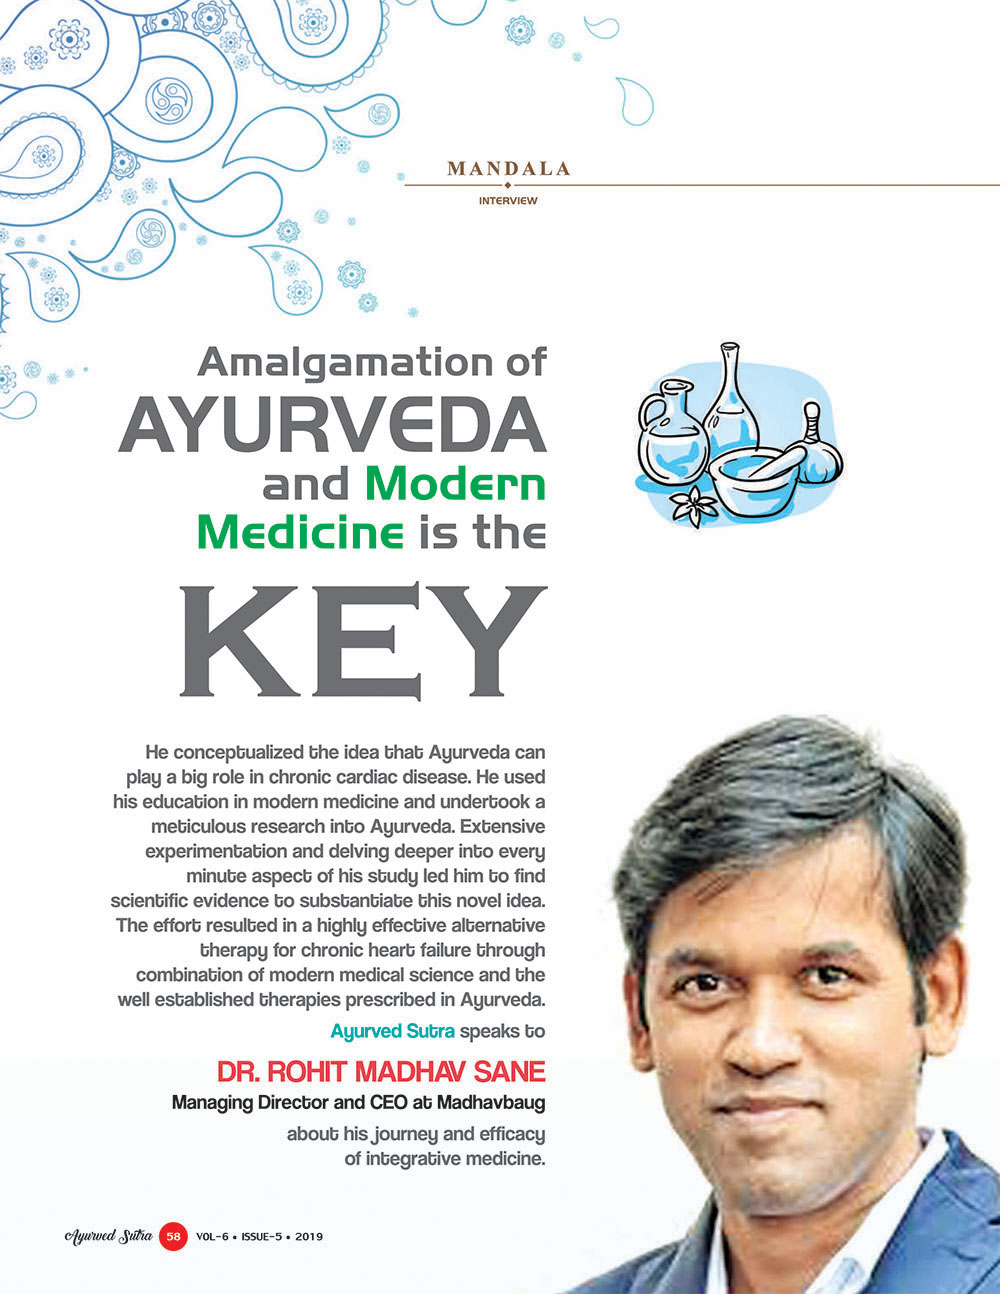 Ayurvedsutra Vol 06 issue 05 60 - Amalgamation of Ayurveda and  Modern Medicine is the Key